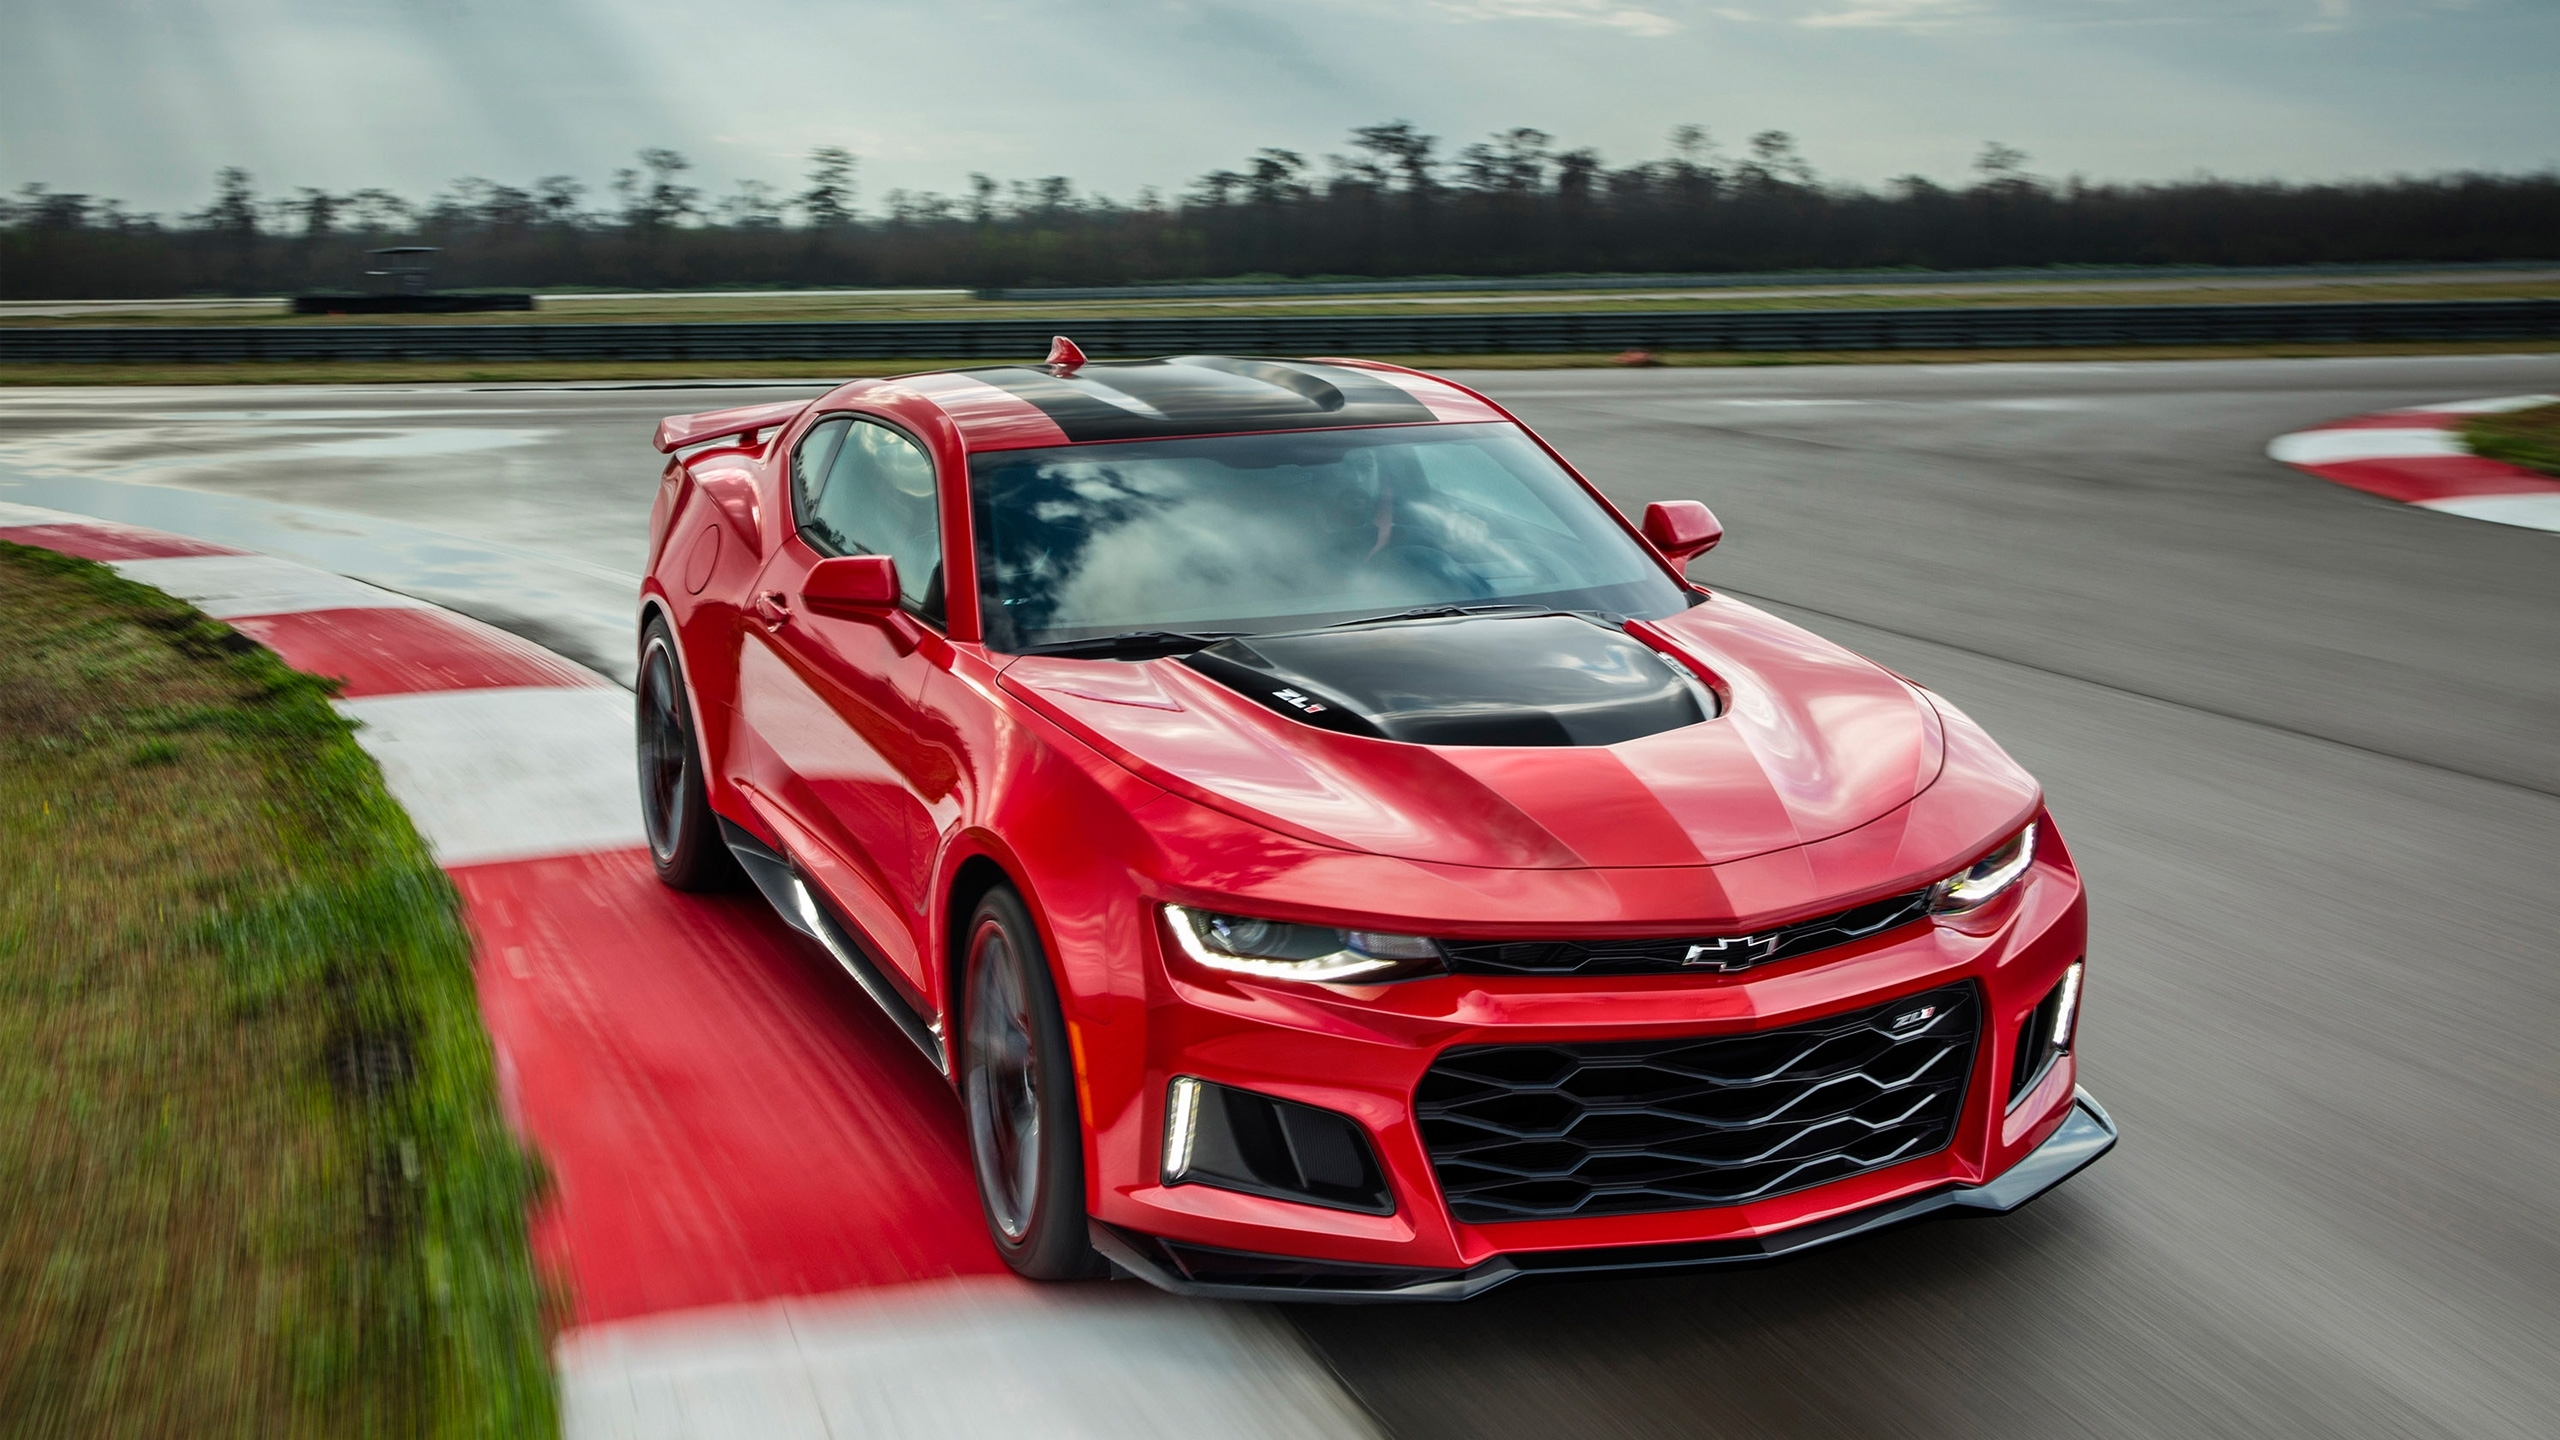 2017 chevrolet camaro zl1 wallpaper | hd car wallpapers| id #6331